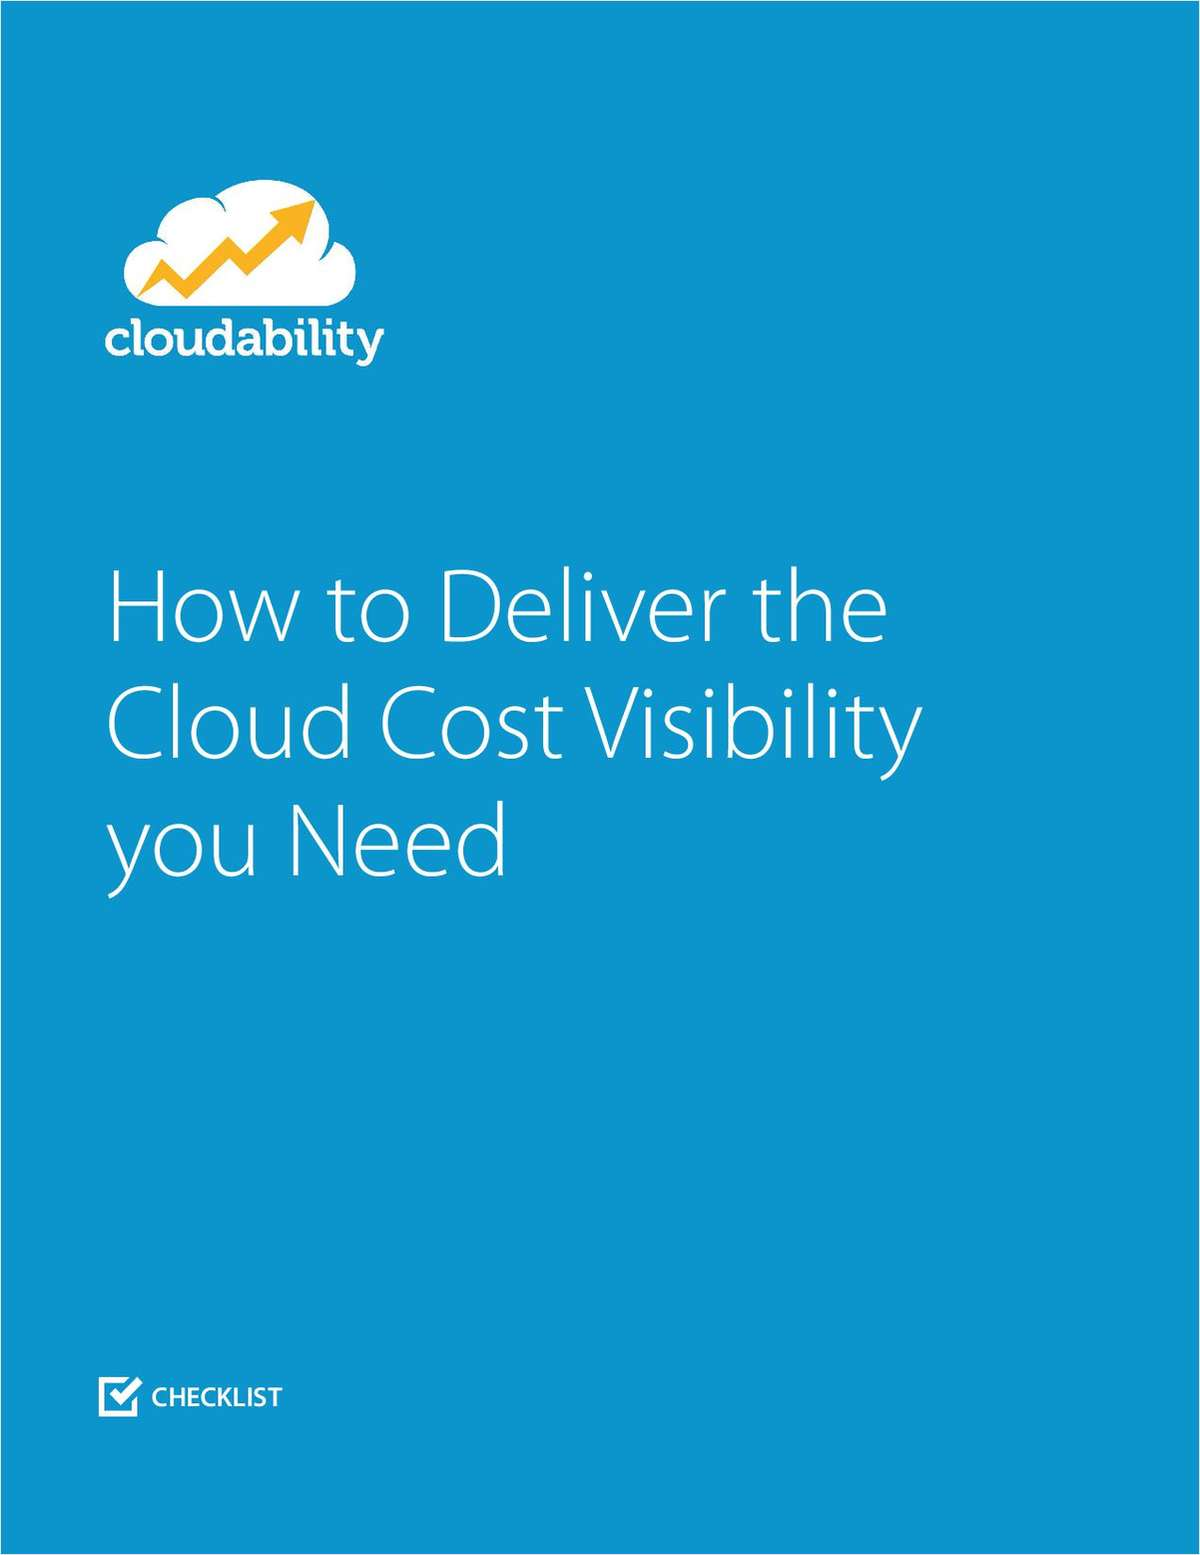 How to Deliver the Cloud Cost Visibility You Need